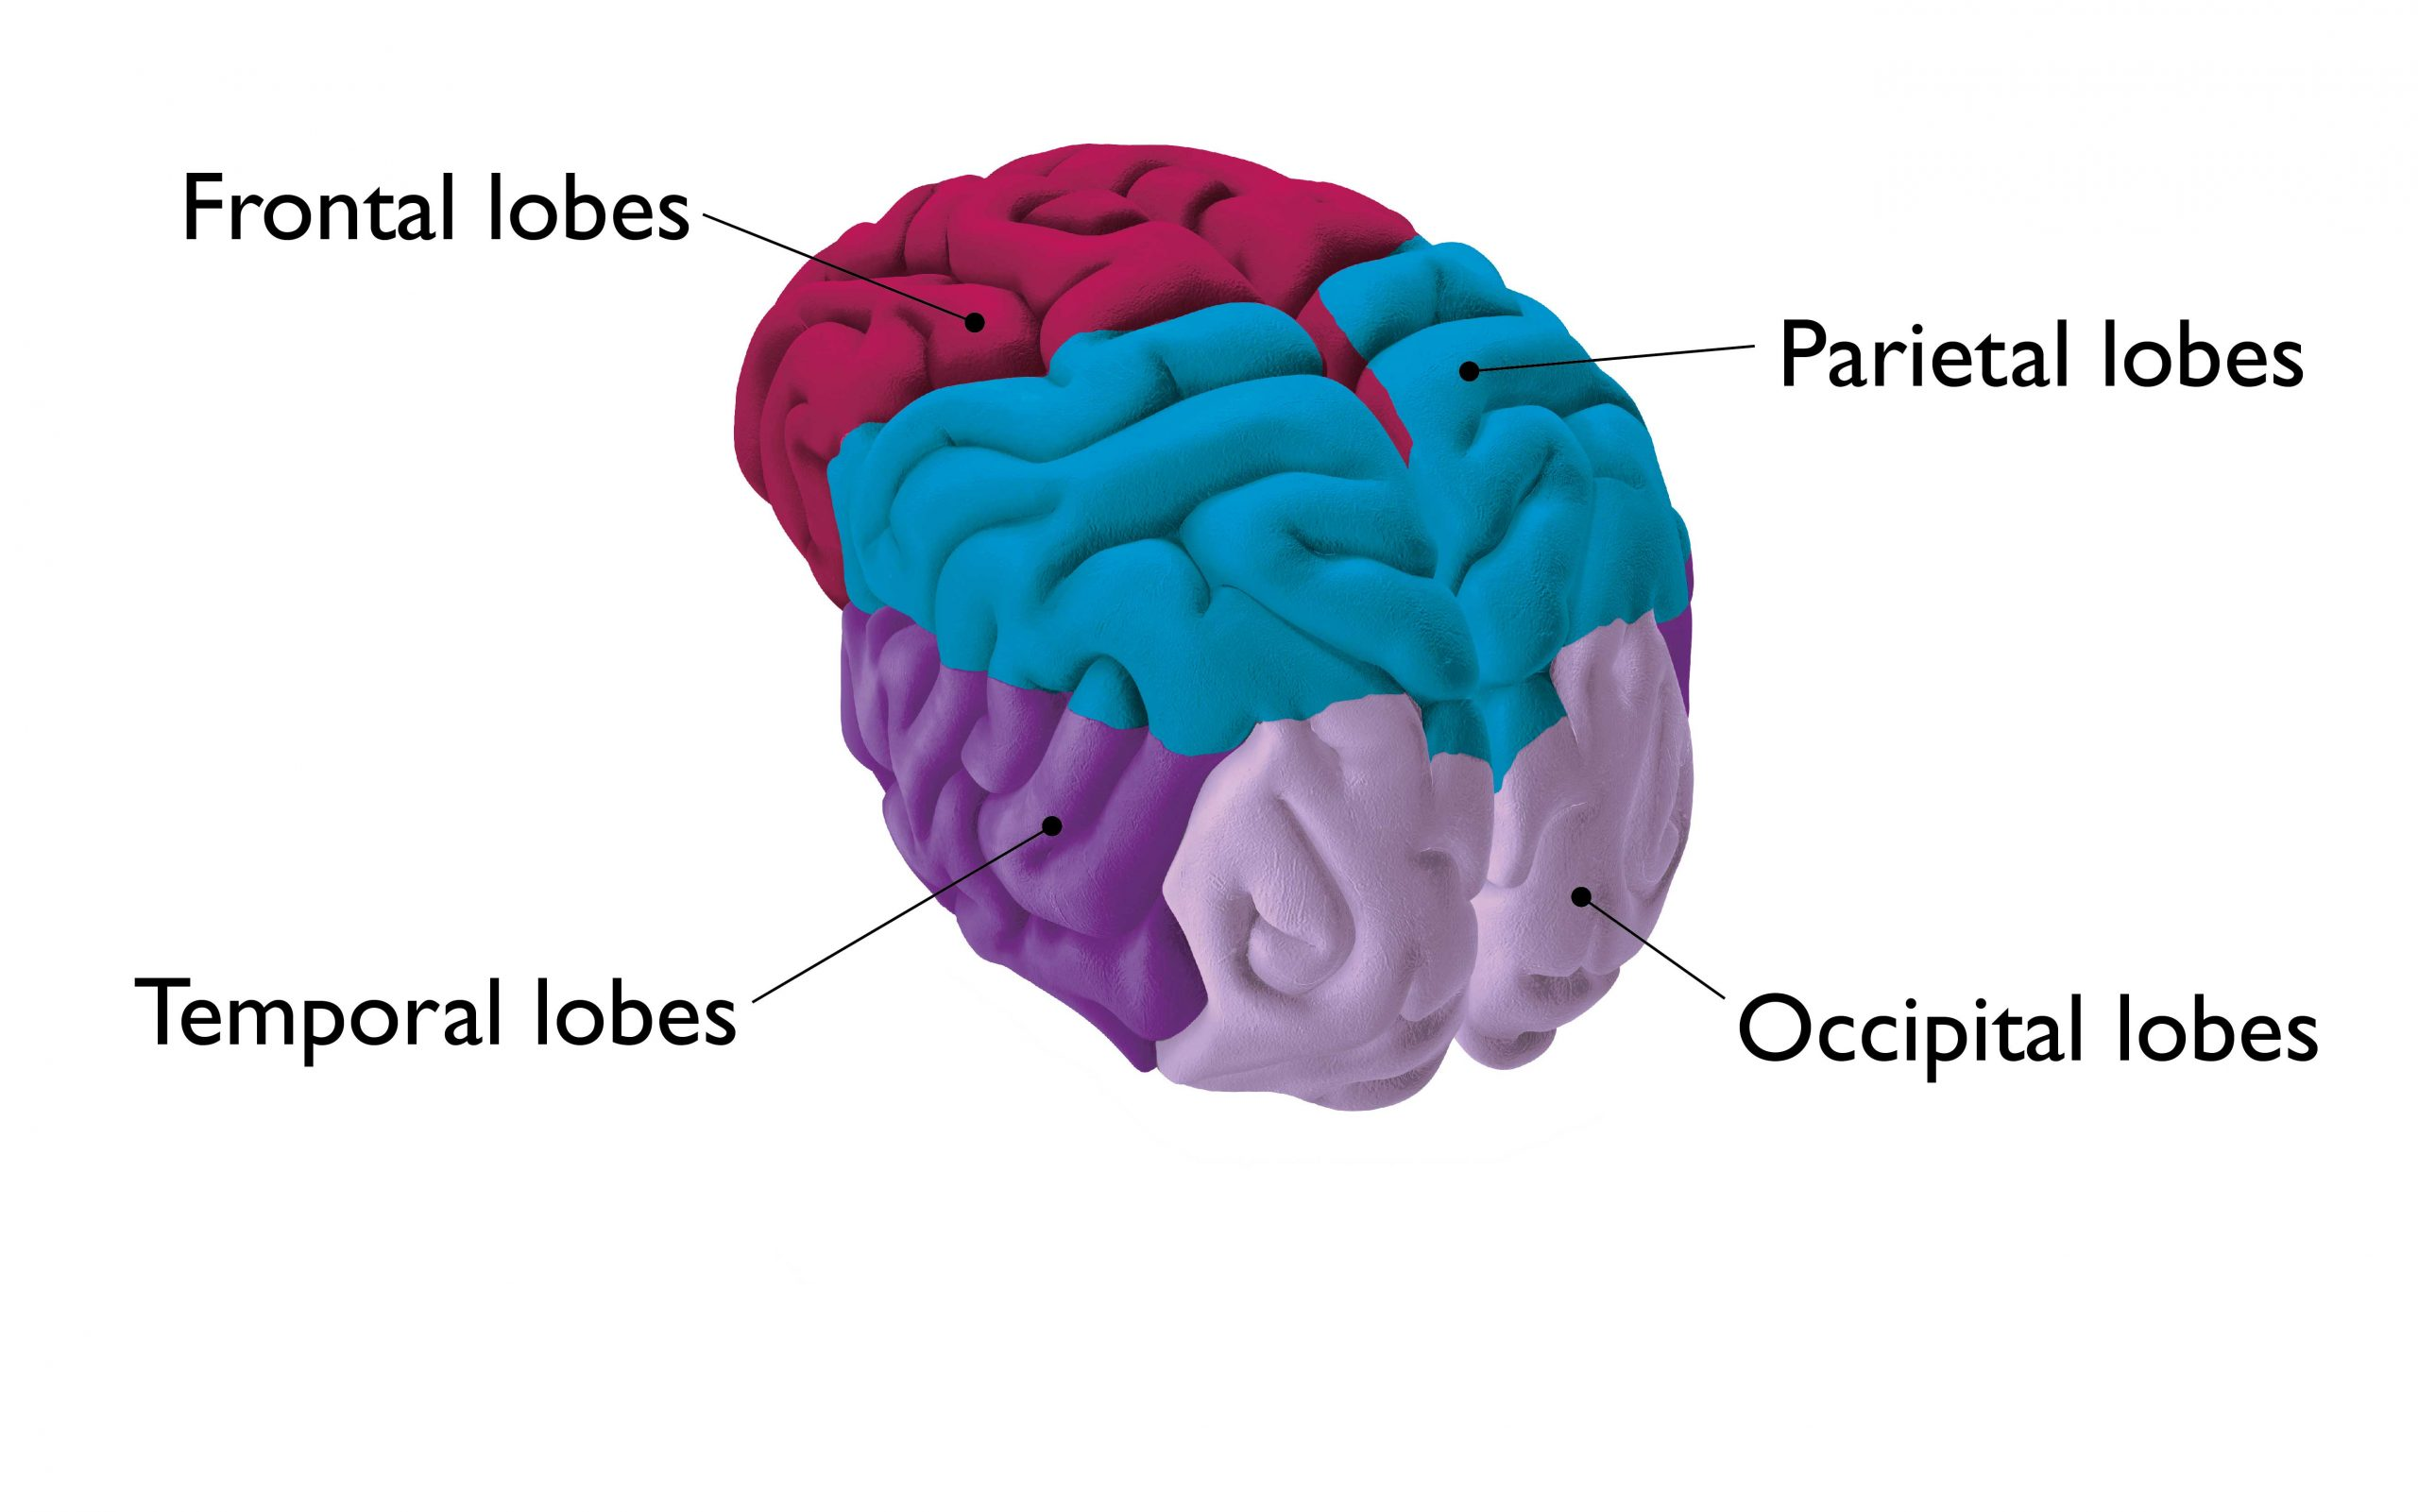 The lobes of the brain labelled